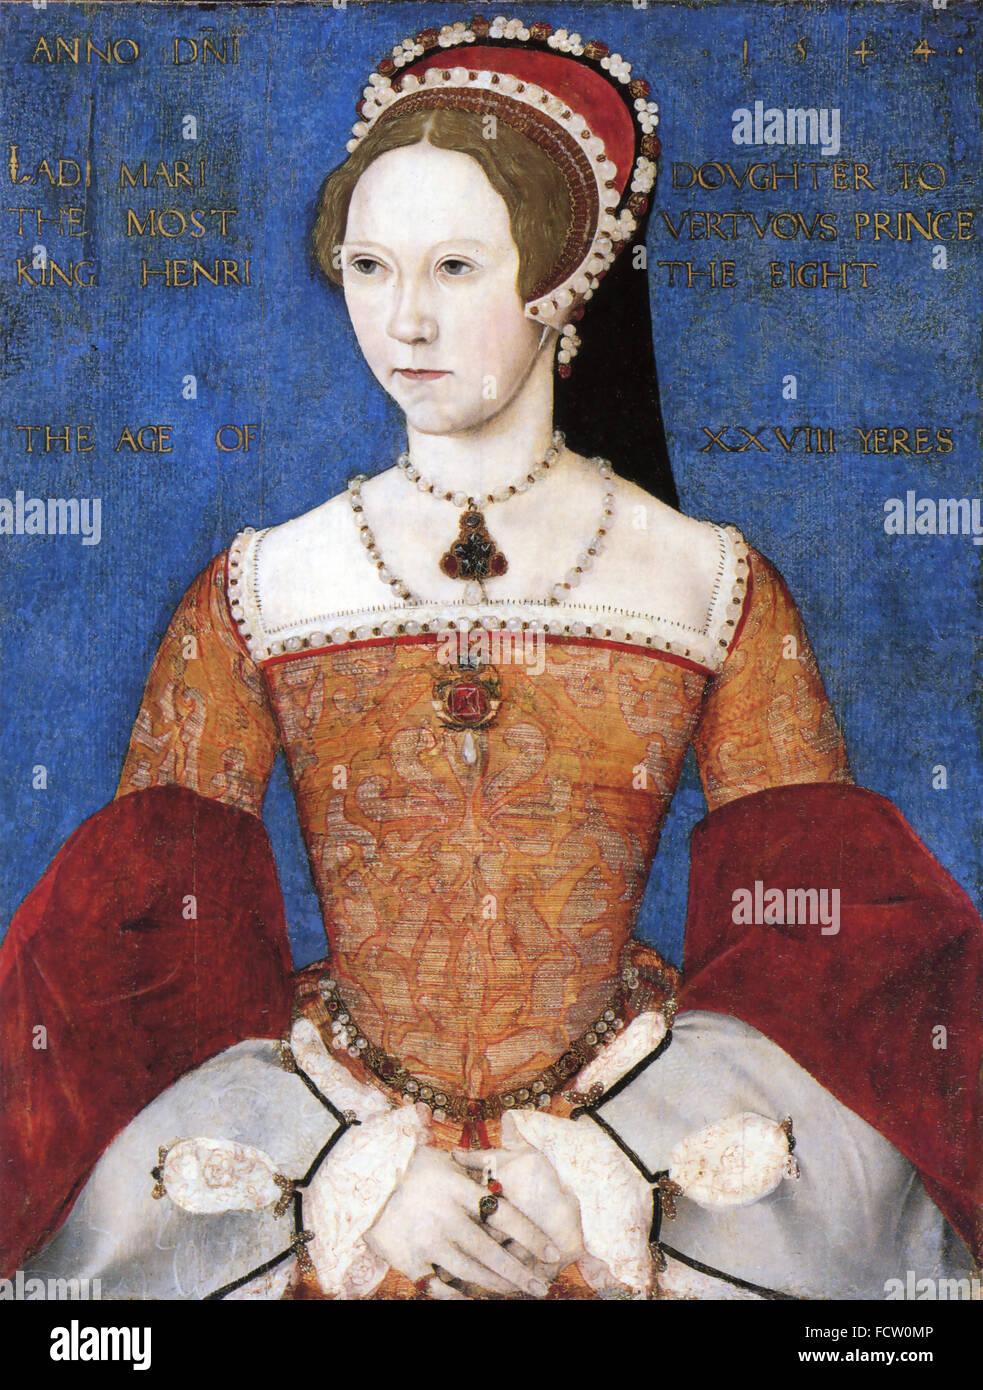 MARY I OF ENGLAND AND IRELAND (1516-1558)  in a 1544 painting - Stock Image